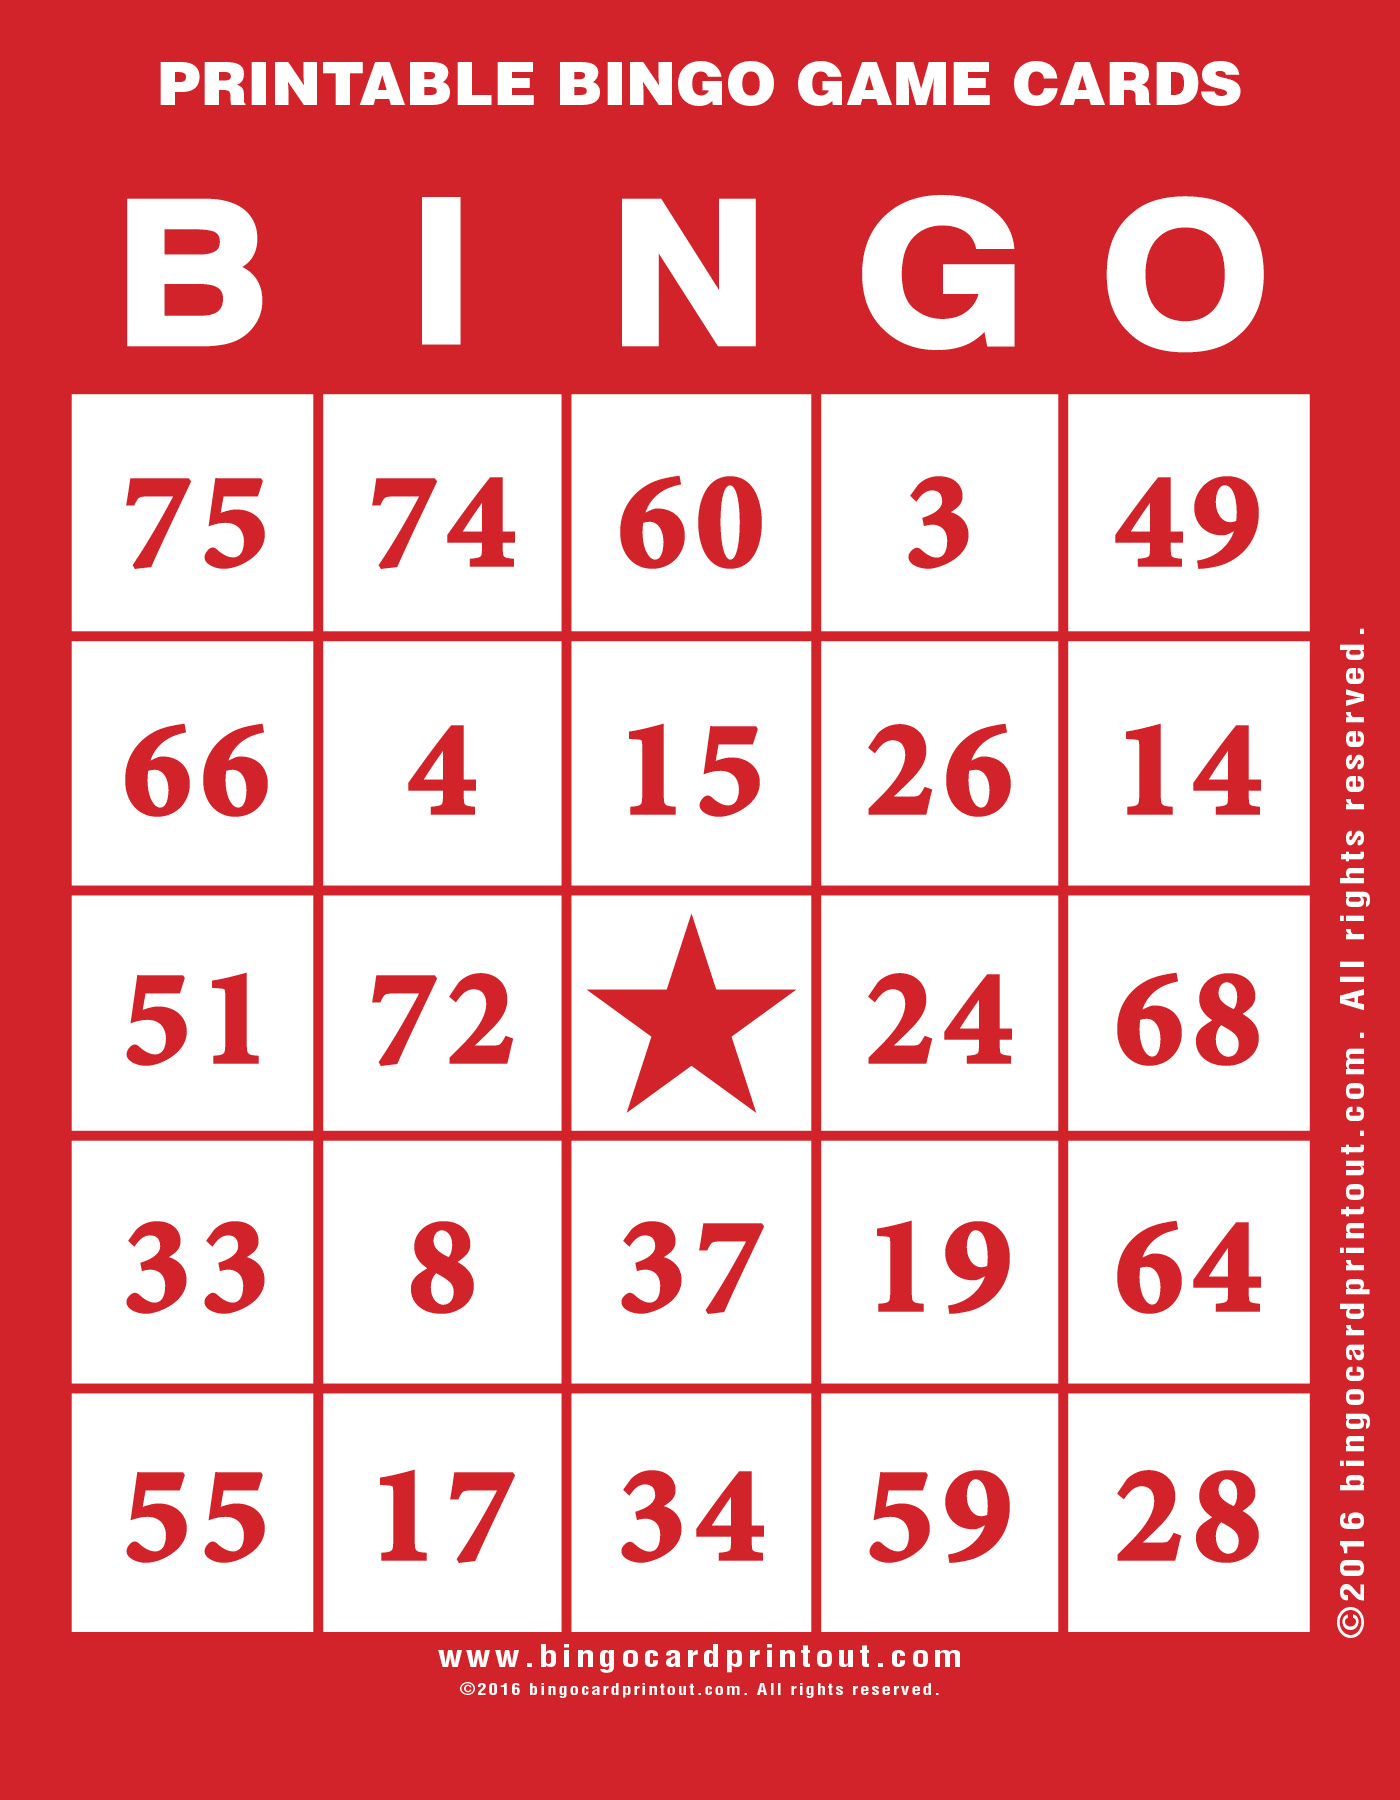 Printable Bingo Game Cards - Bingocardprintout